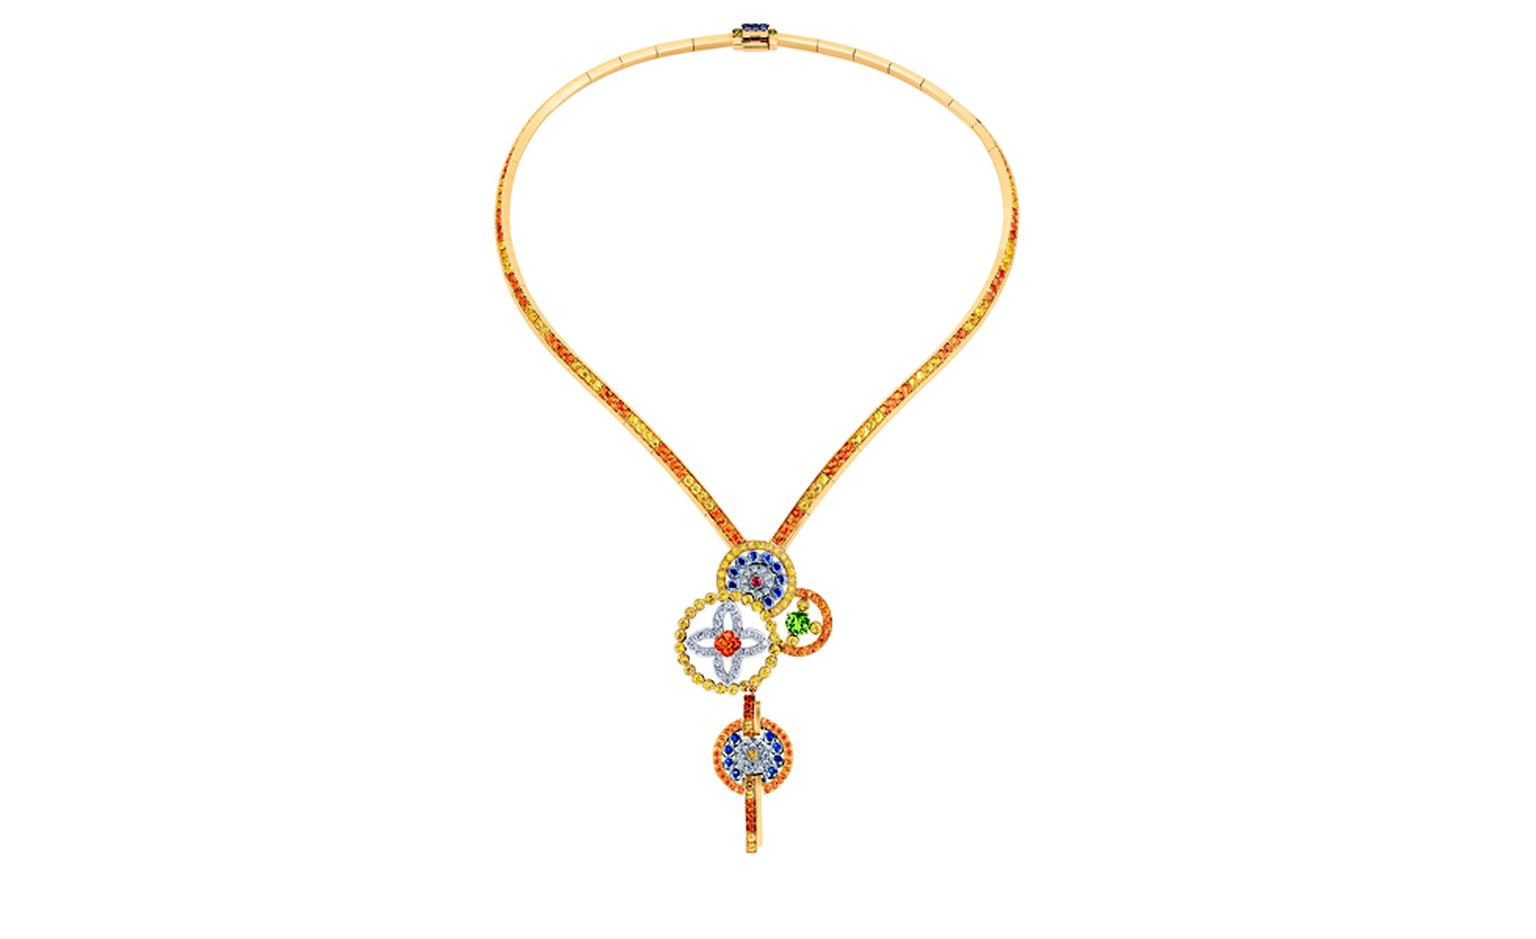 LOUIS VUITTON, Ornament Tribal Necklace, yellow gold, blue, yellow and pink sapphires, spessartite and tsavorite garnets and diamonds. £43,500